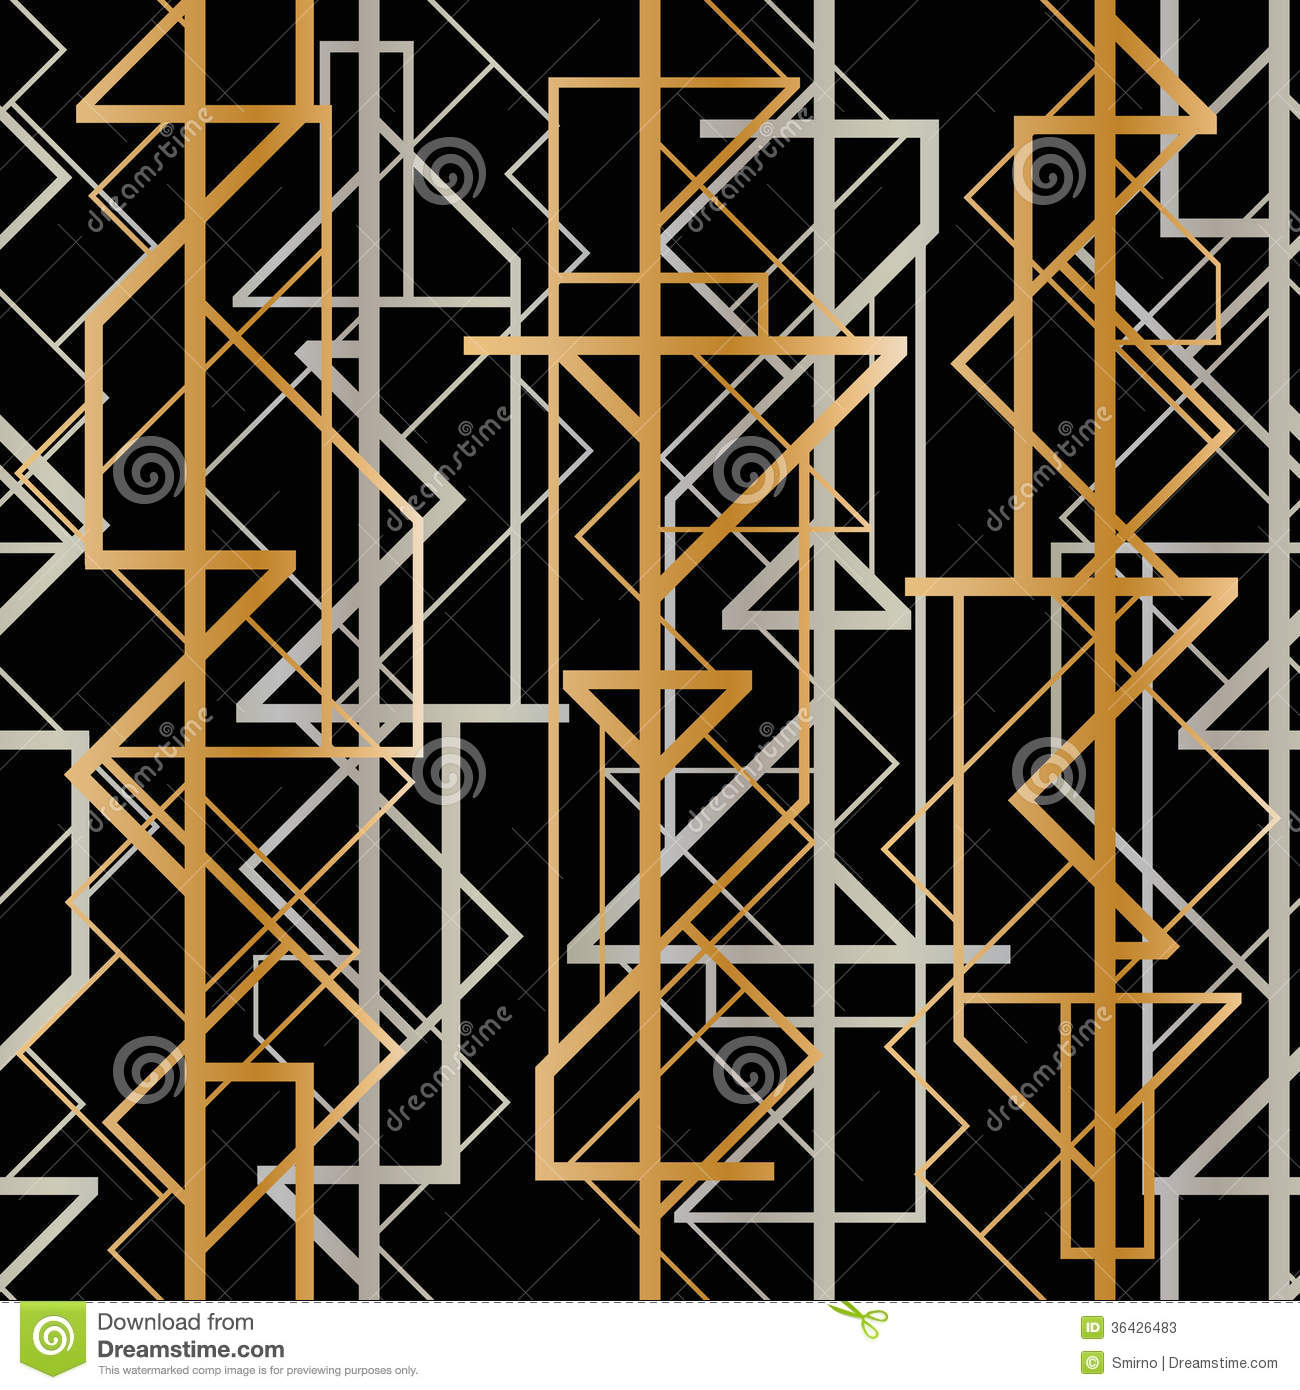 Art Deco Geometric Pattern Stock Photos - Image: 36426483